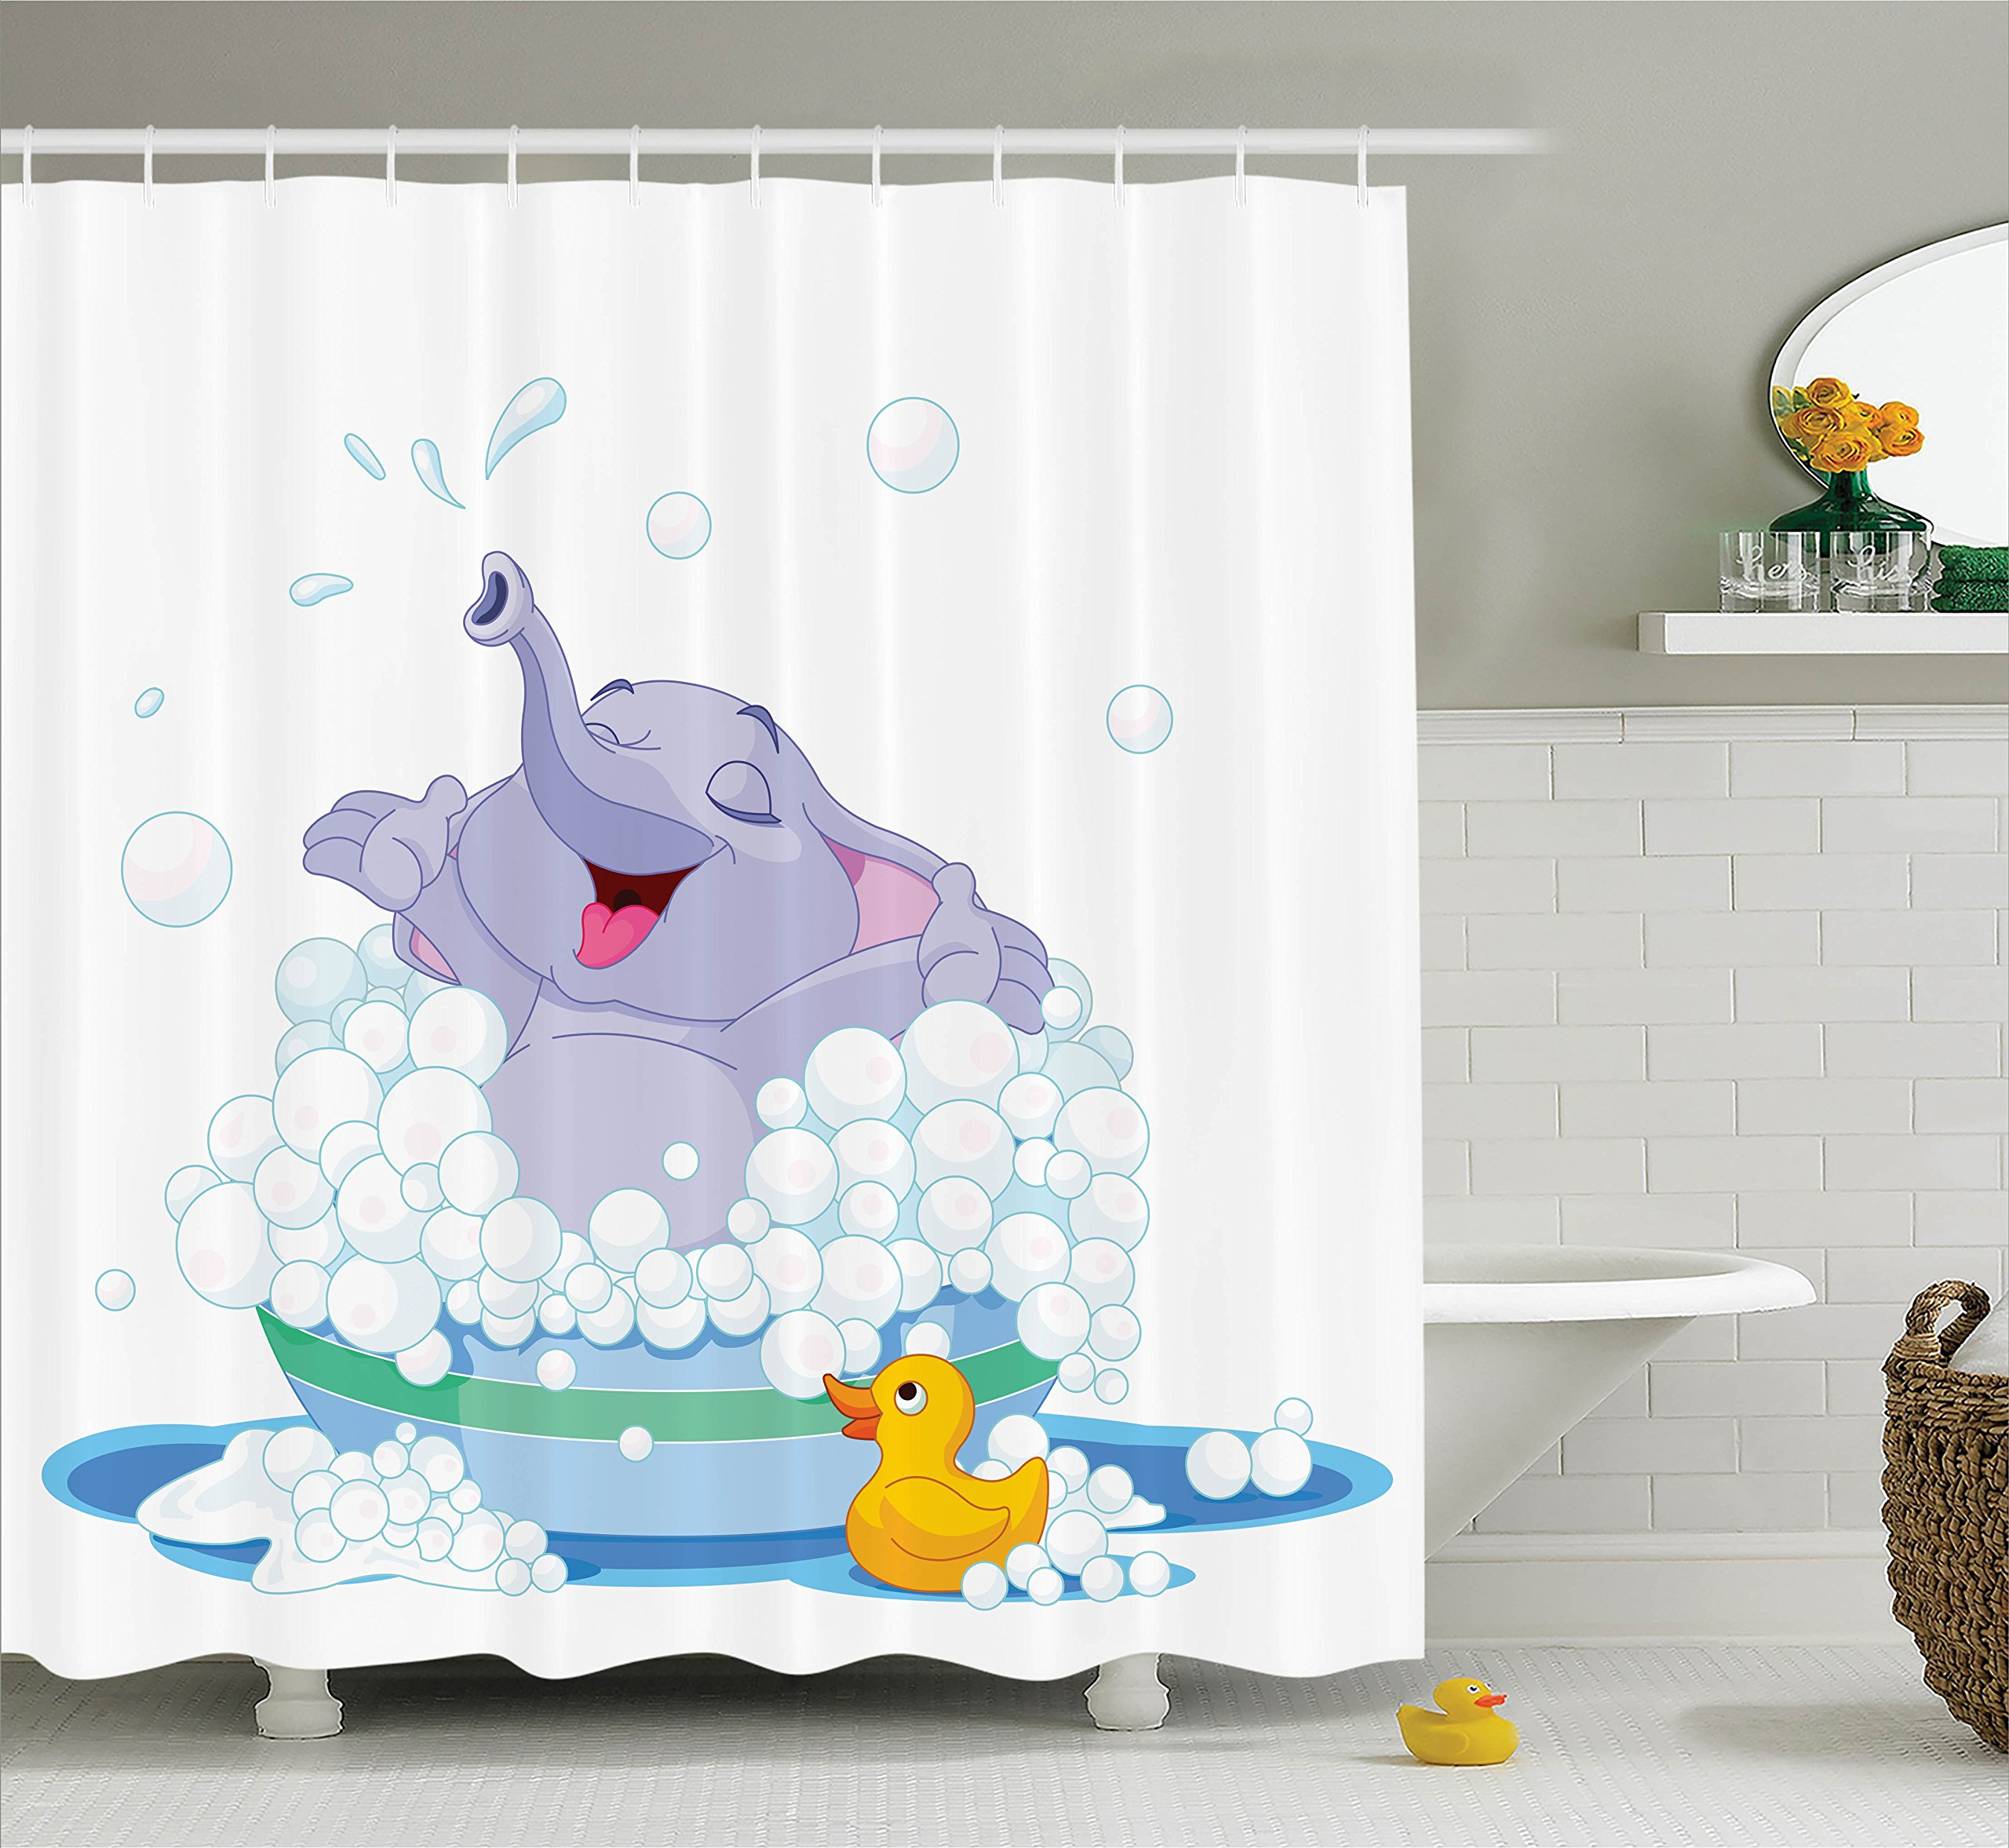 Ambesonne Nursery Decor Collection, Elephant Takes Bubble Bath with Duck Water Games Wildlife Animals Fun Art Print, Polyester Fabric Bathroom Shower Curtain, 75 Inches Long, Multi